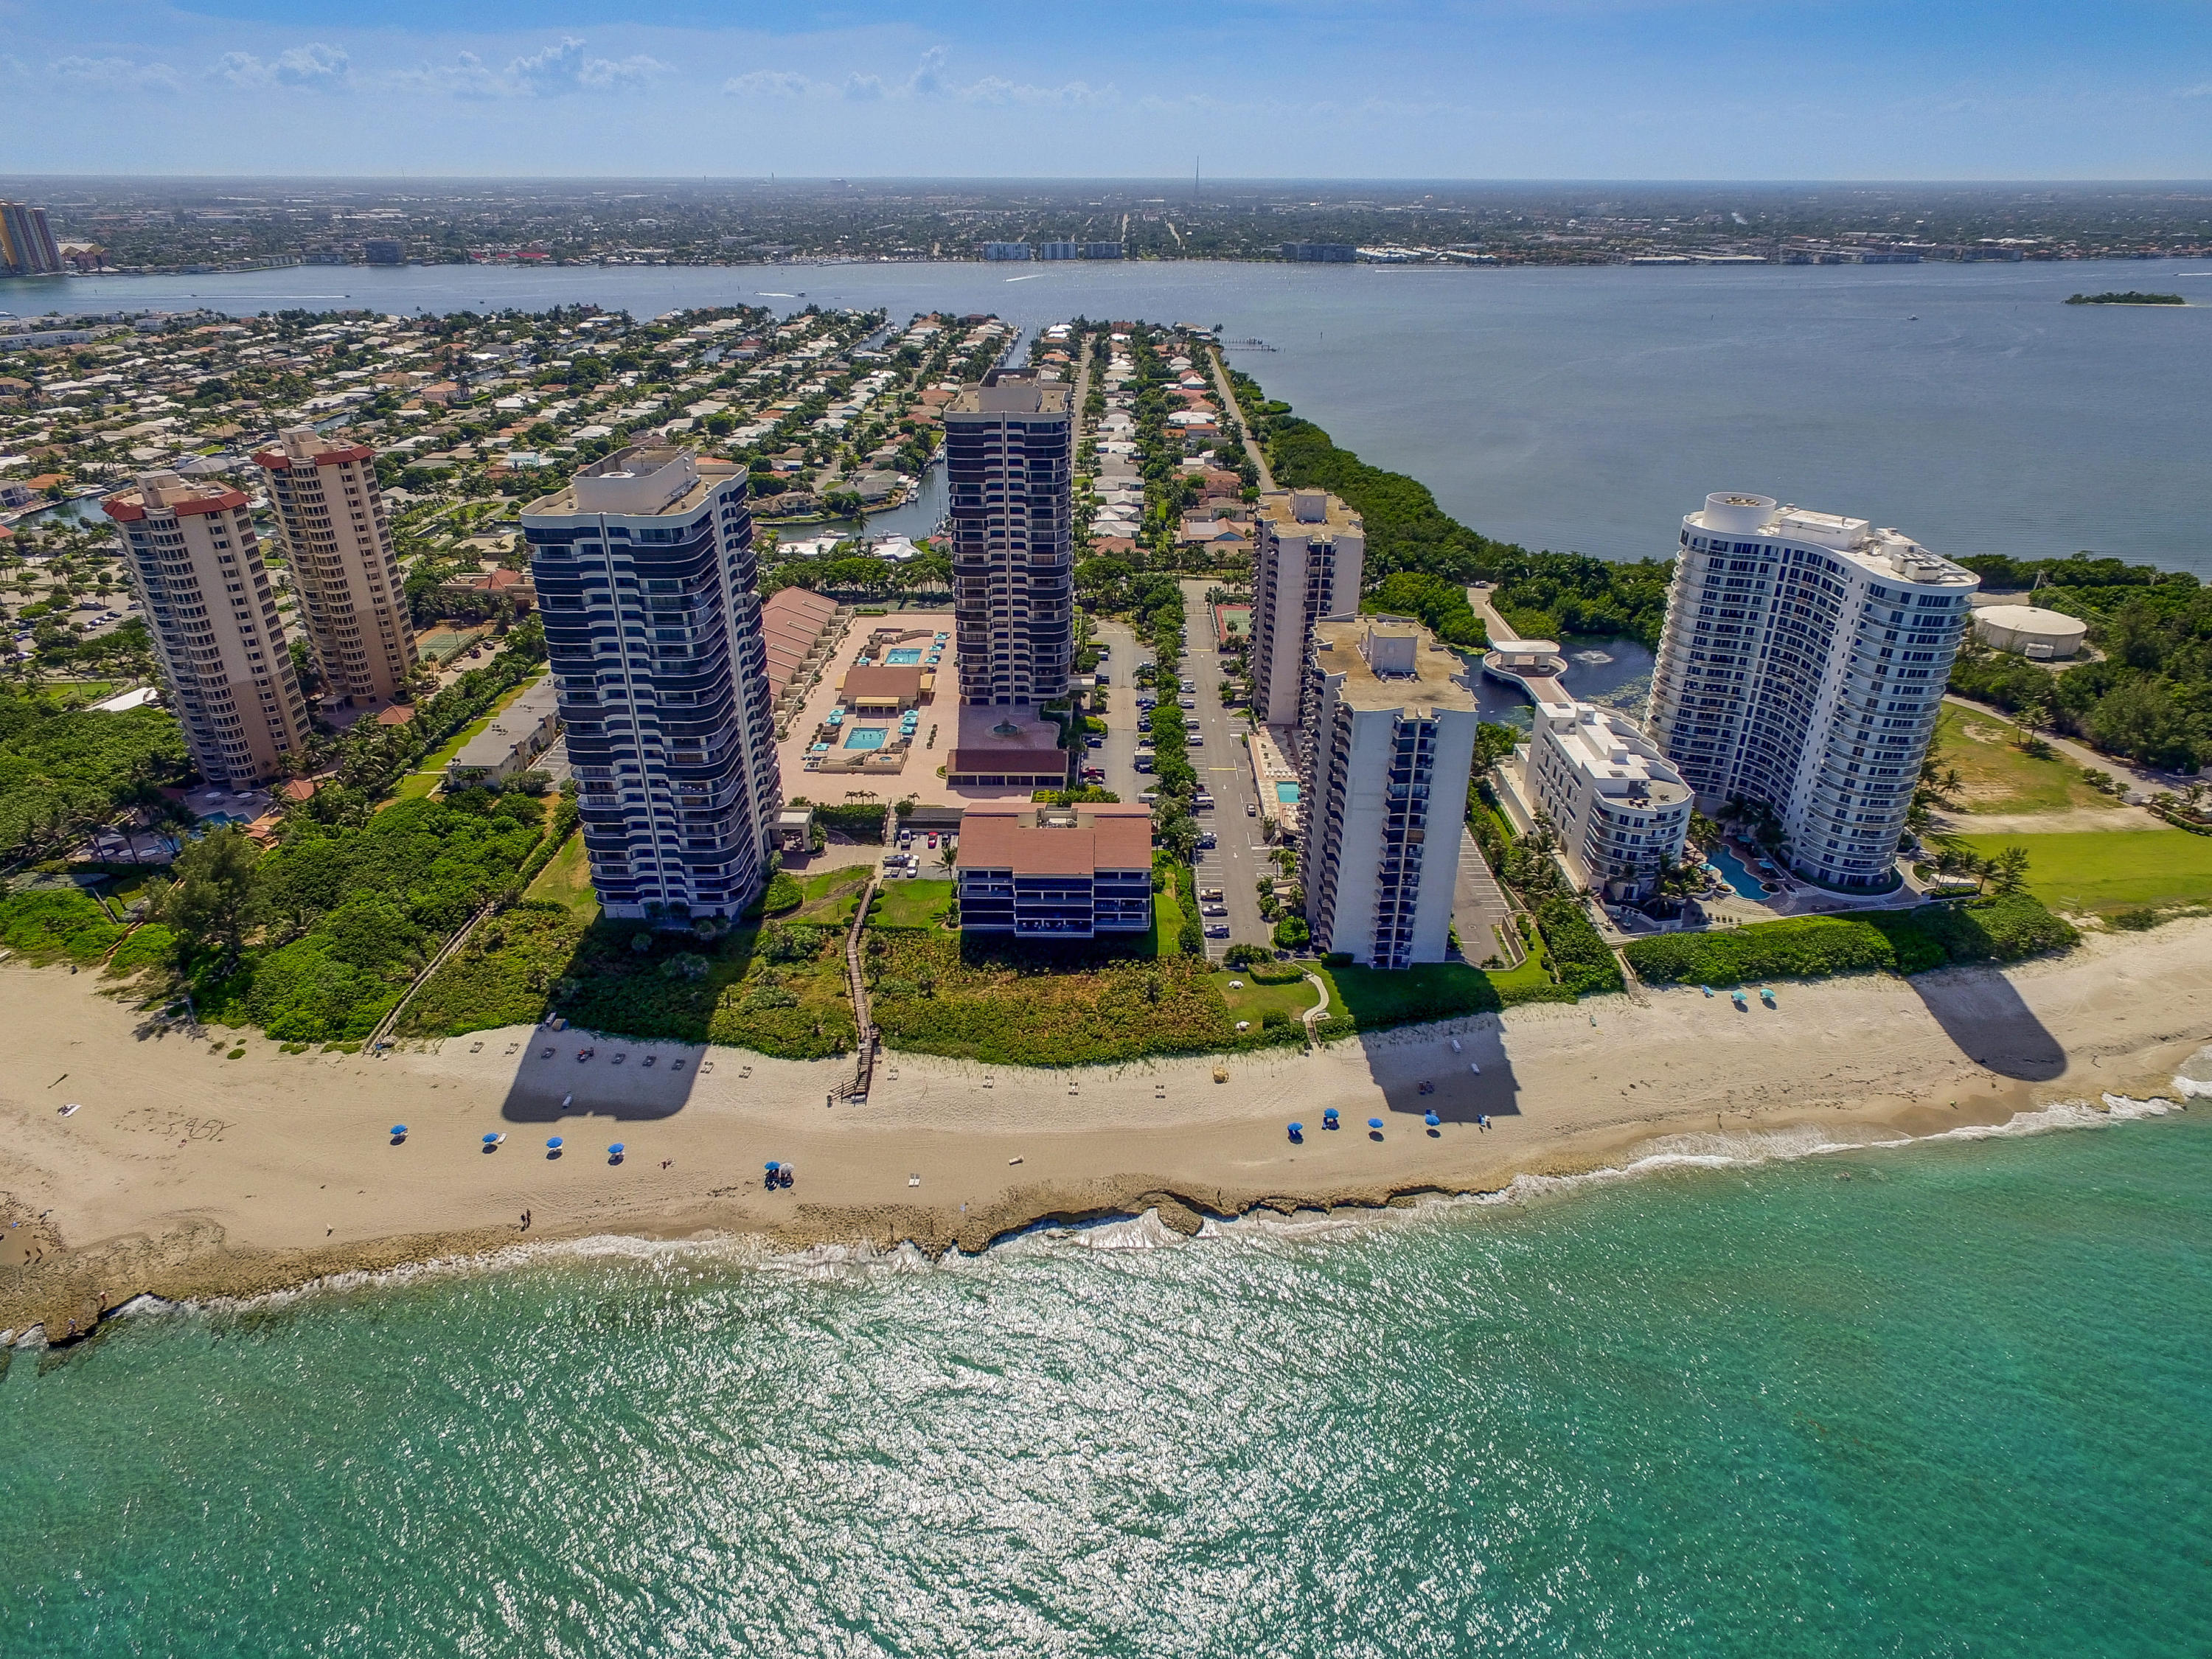 New Home for sale at 4000 Ocean Drive  in Singer Island